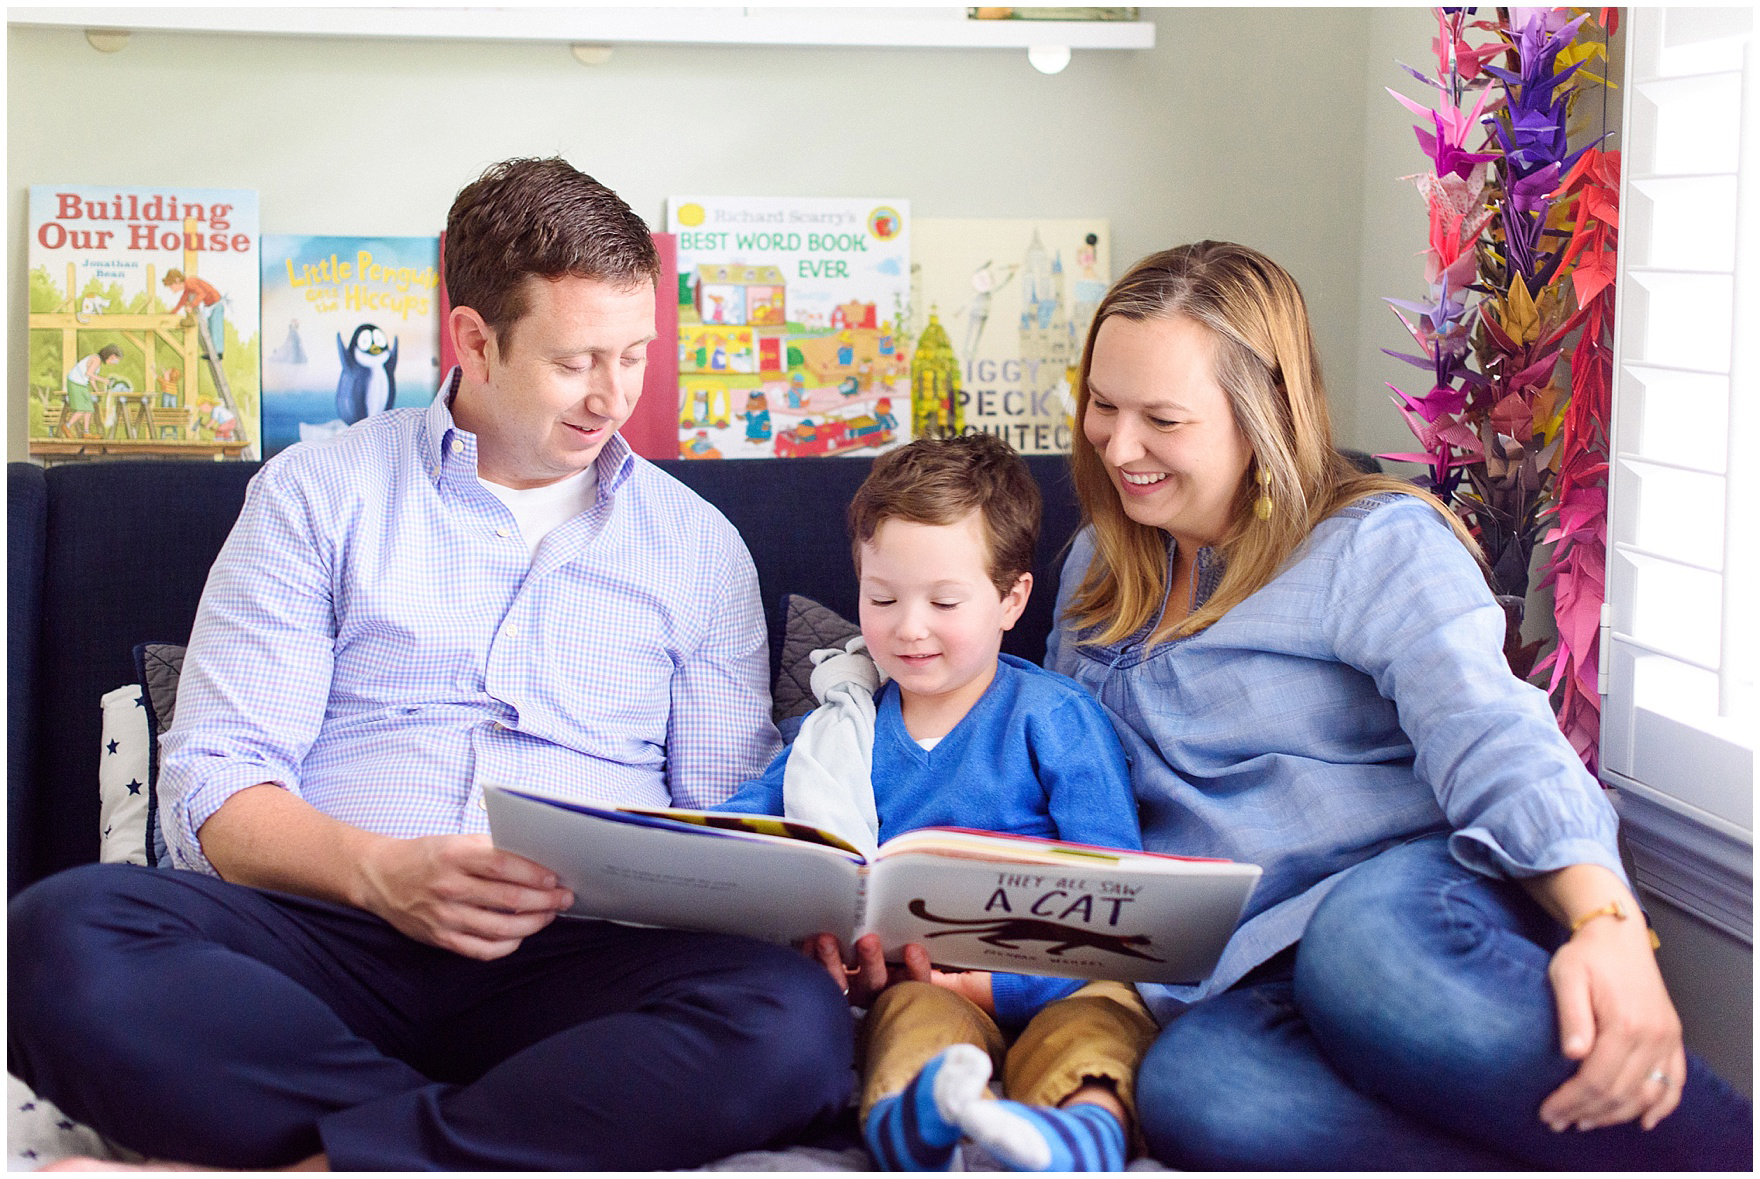 A family reads a book together during an at home family session.